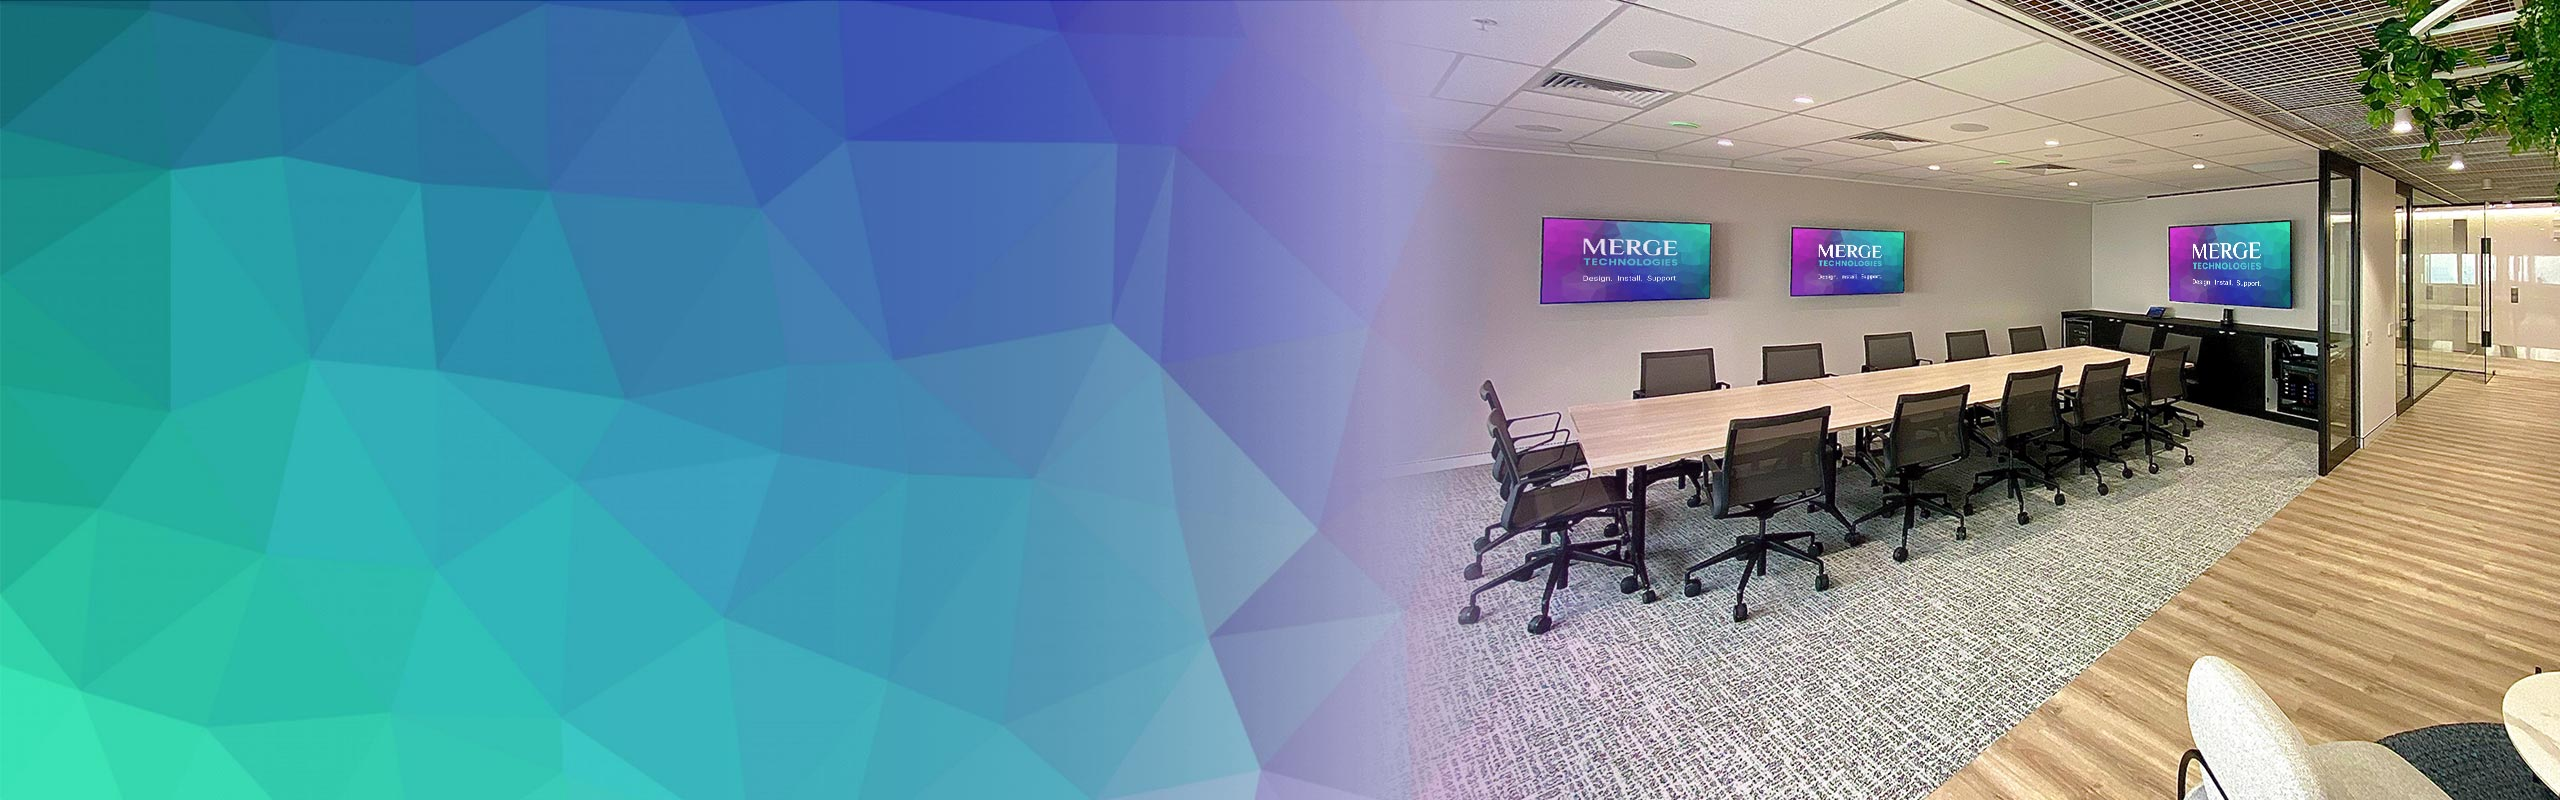 video conference meeting and boardroom by Merge Technologies